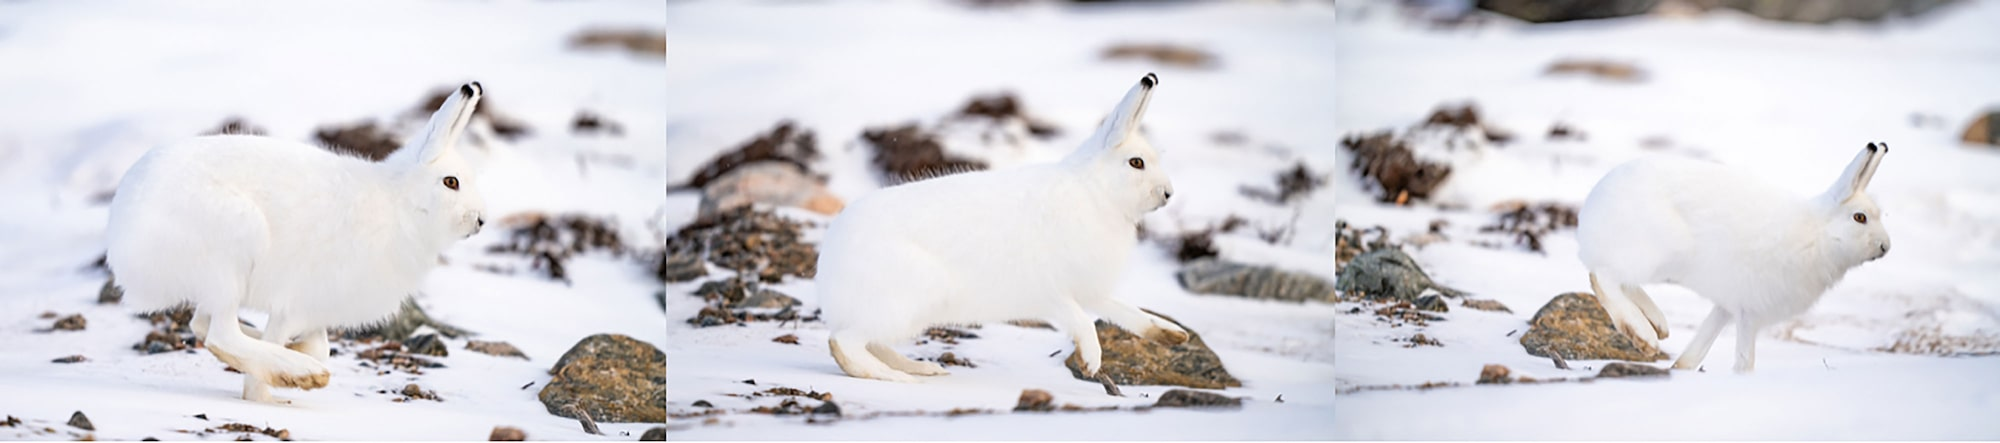 Alpha Universe Nate Luebbe Sony 400mm Churchil arctic hare triptych